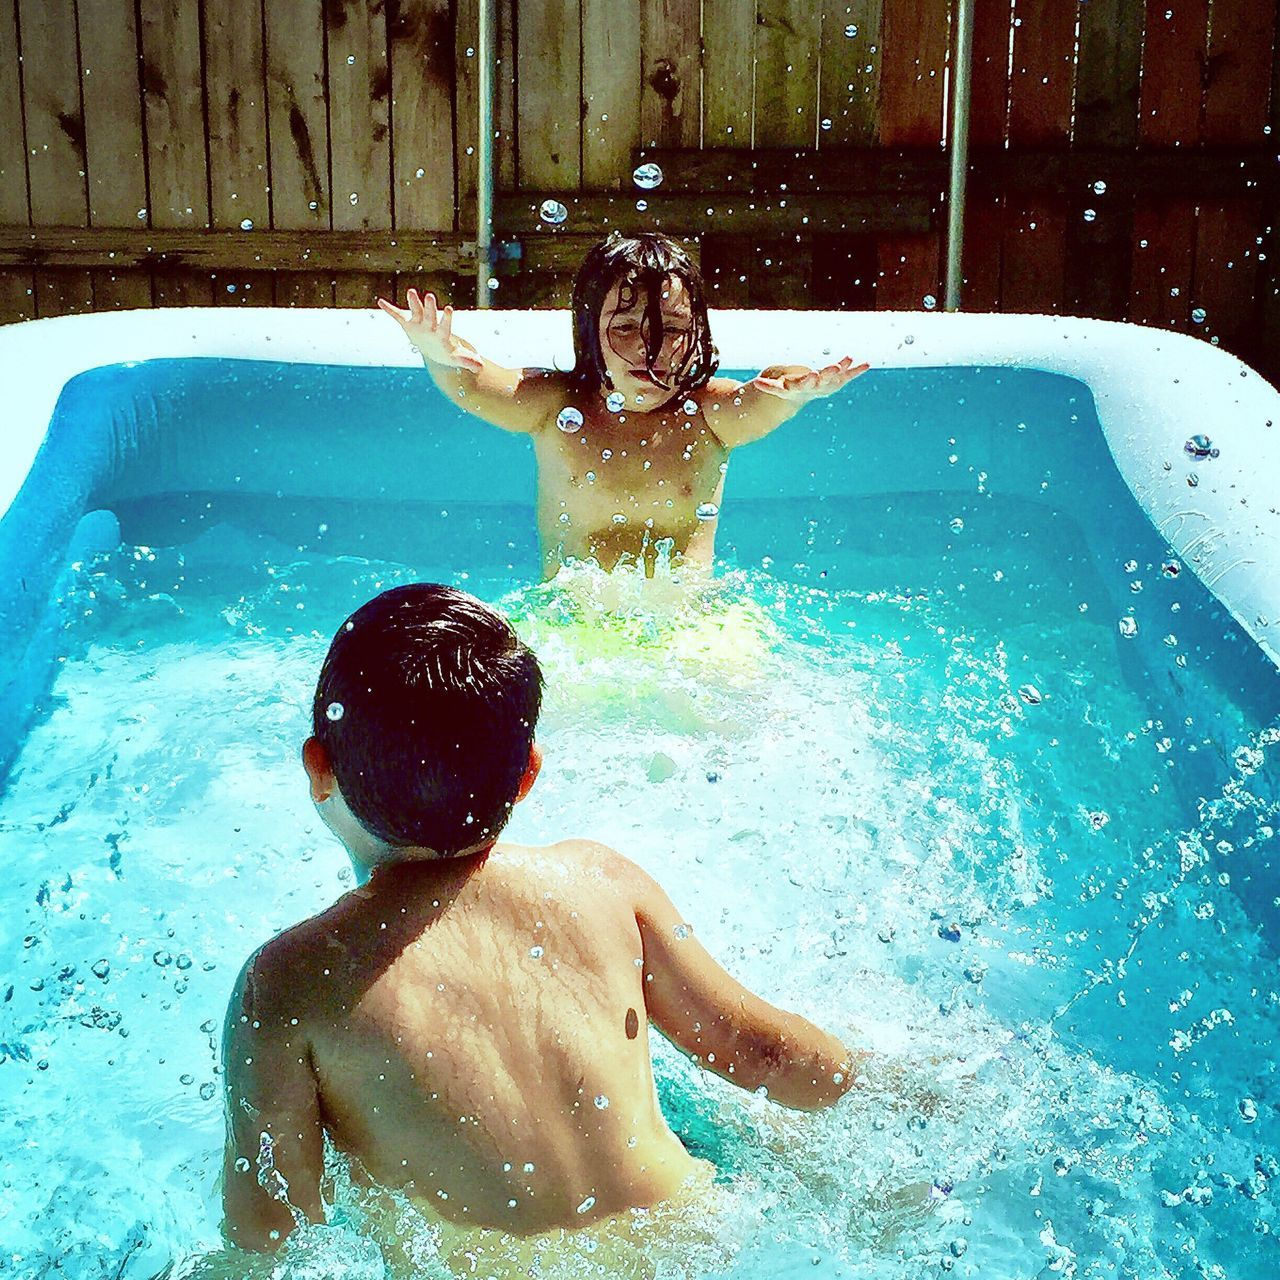 Water Bender Swimming Pool Water Boys Fun Childhood Leisure Activity Happiness Enjoyment Smiling Child Shirtless Wet Two People Swimming Taking A Bath Vacations Togetherness Day Cheerful Portrait Drops Droplets Summer Spring The Week On EyeEm EyeEmNewHere Break The Mold EyeEmNewHere The Great Outdoors - 2017 EyeEm Awards The Portraitist - 2017 EyeEm Awards Live For The Story